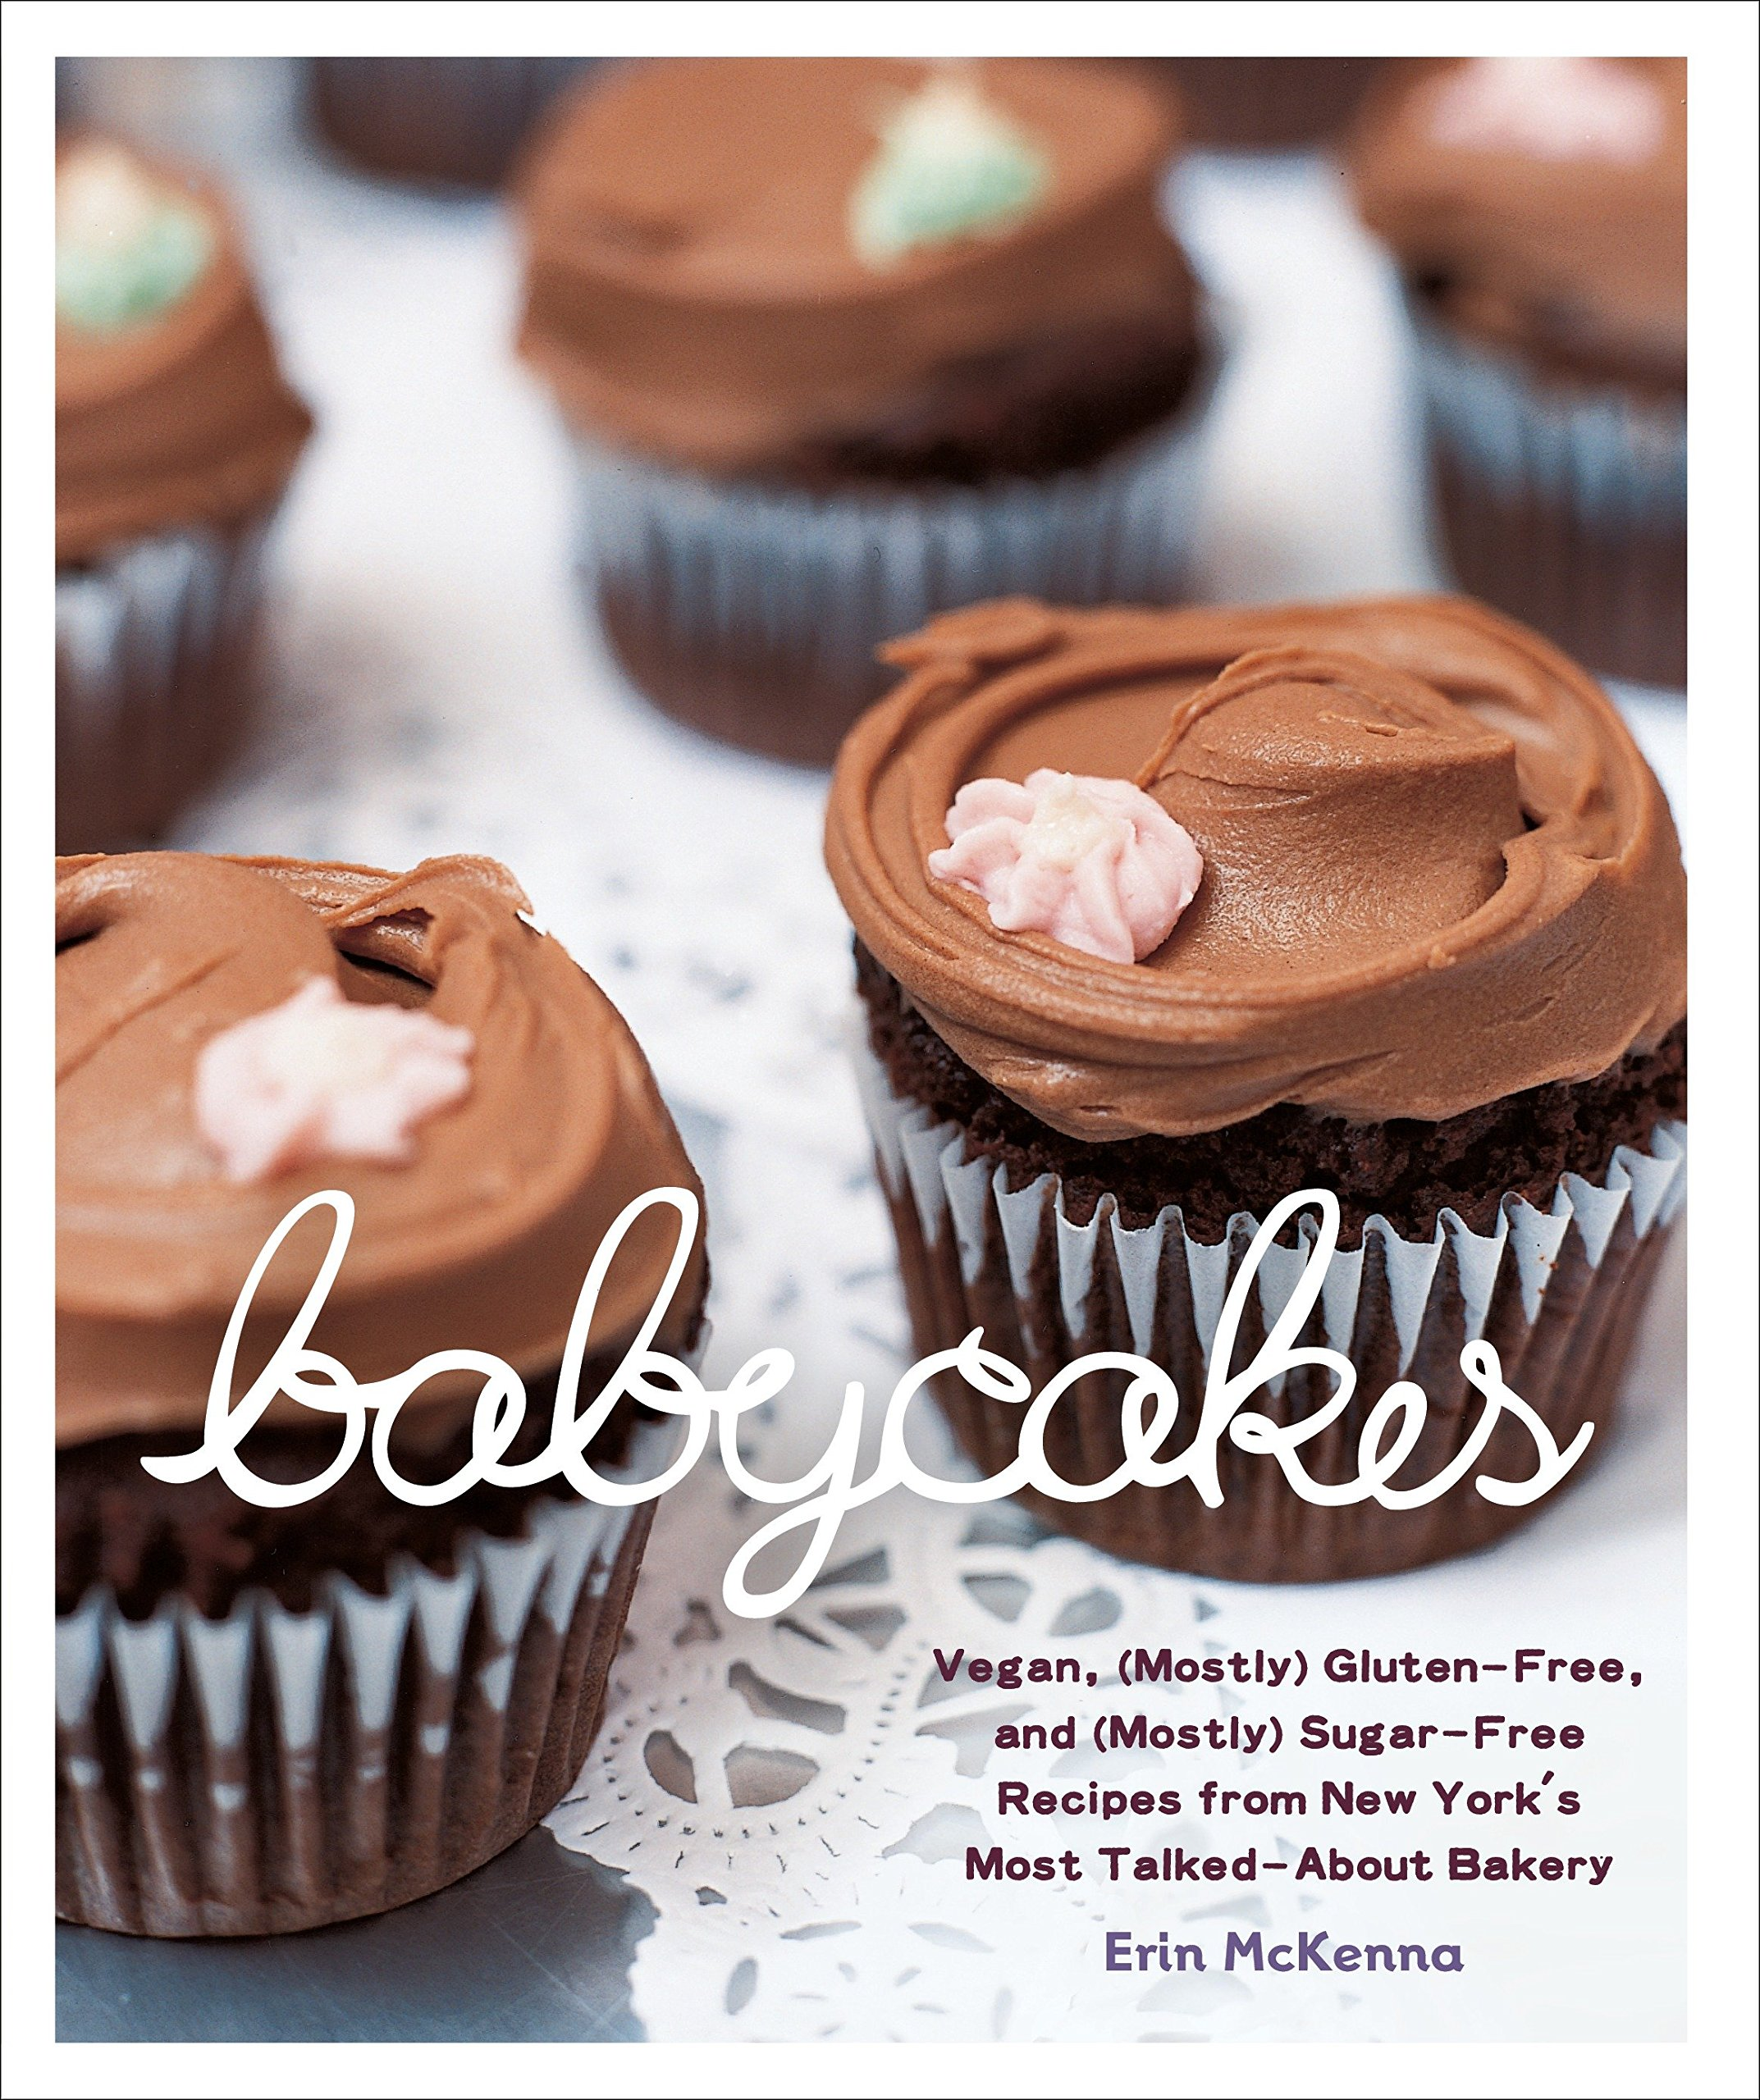 BabyCakes: Vegan, (Mostly) Gluten-Free, and (Mostly) Sugar-Free Recipes from New York's Most Talked-About Bakery: A Baking Book by Clarkson Potter